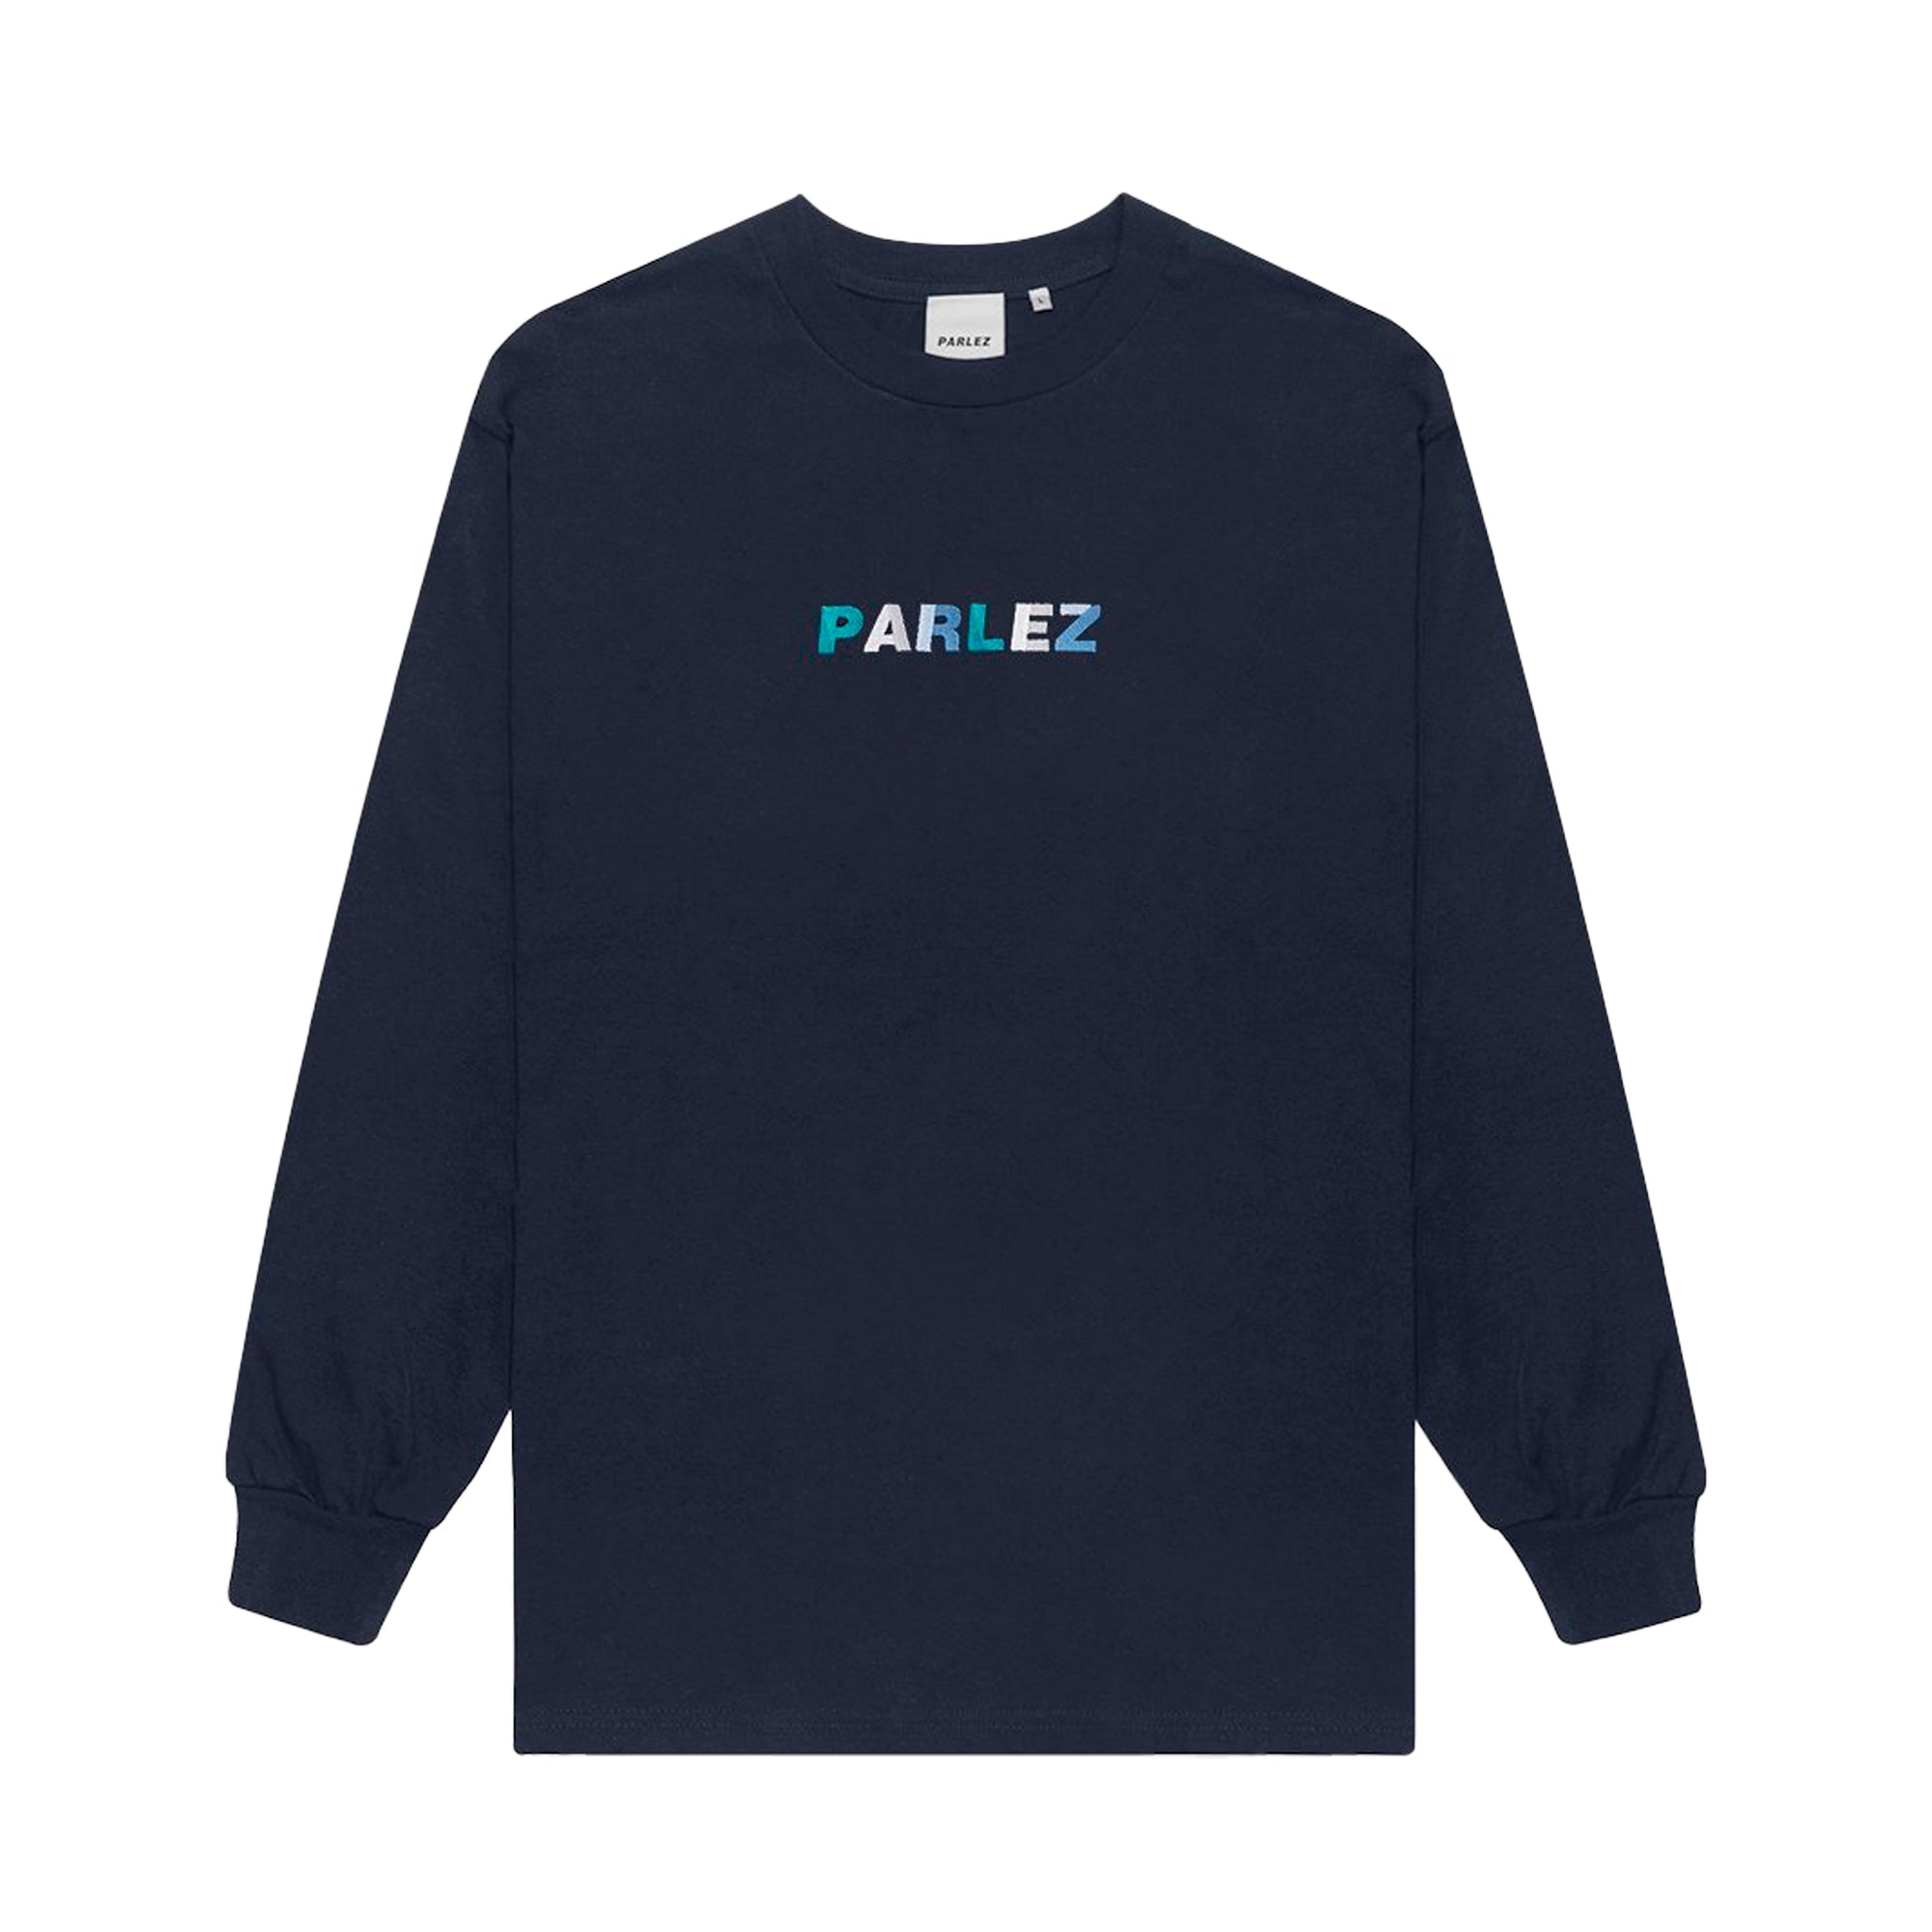 Parlez Faded L/S T-Shirt: Navy - The Union Project